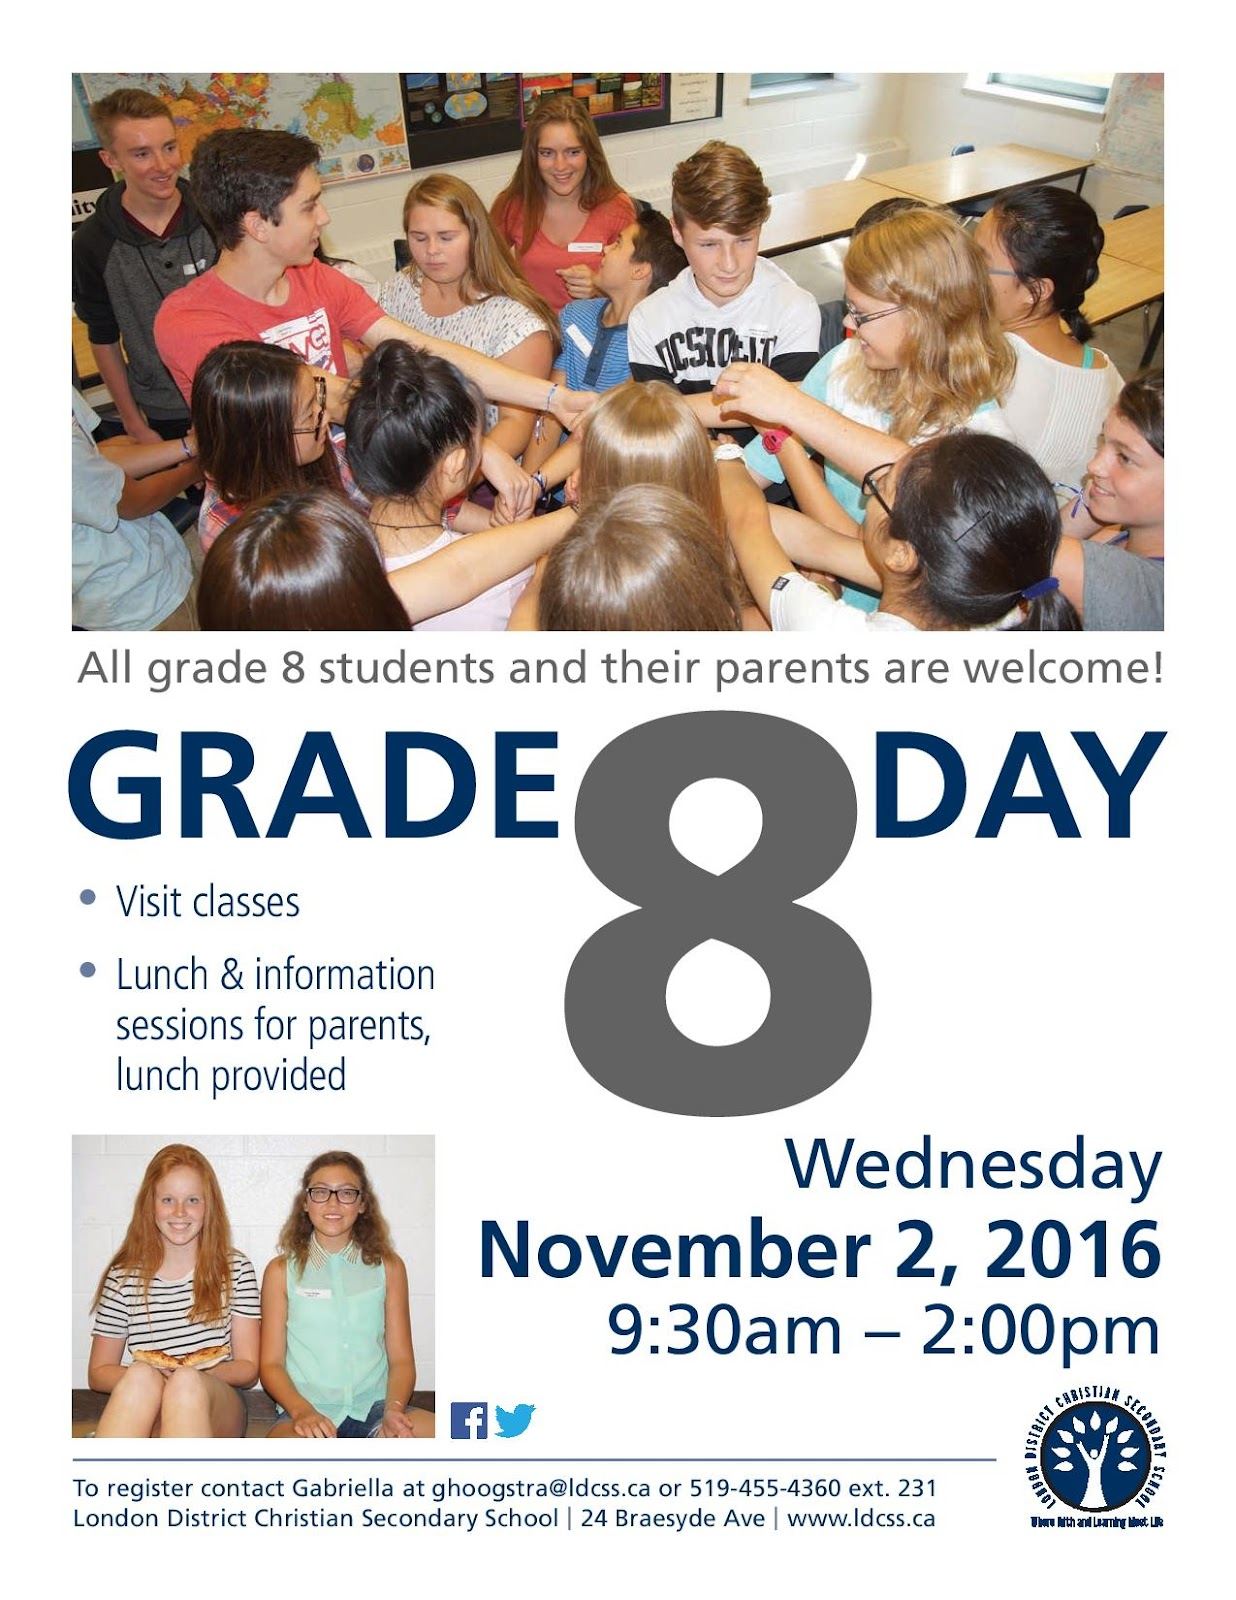 LDCSS-gr8 day POSTER-2016 (2)-page-001.jpg